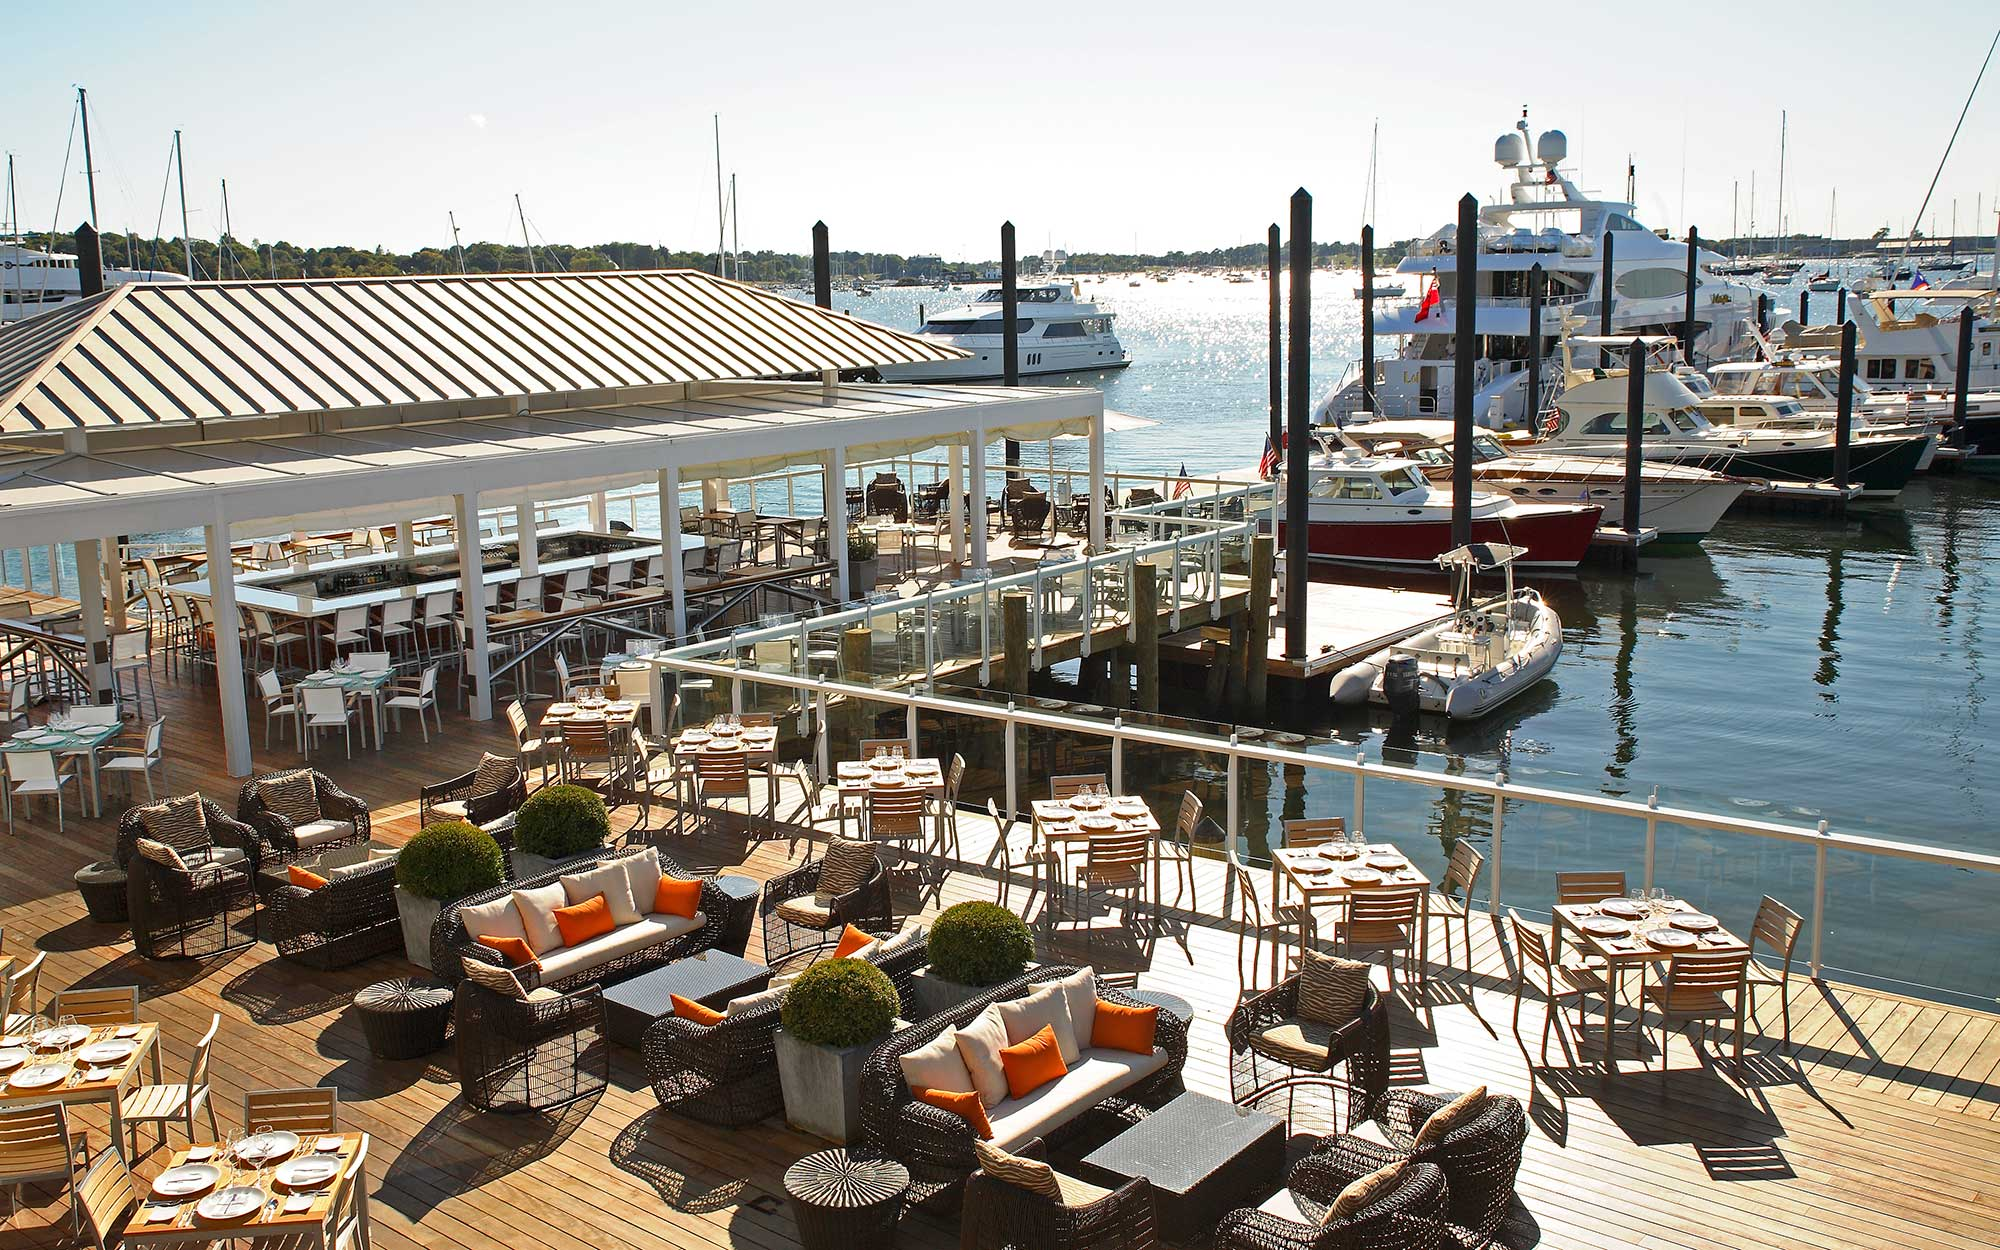 Best Romantic Summer Getaways: Newport, RI